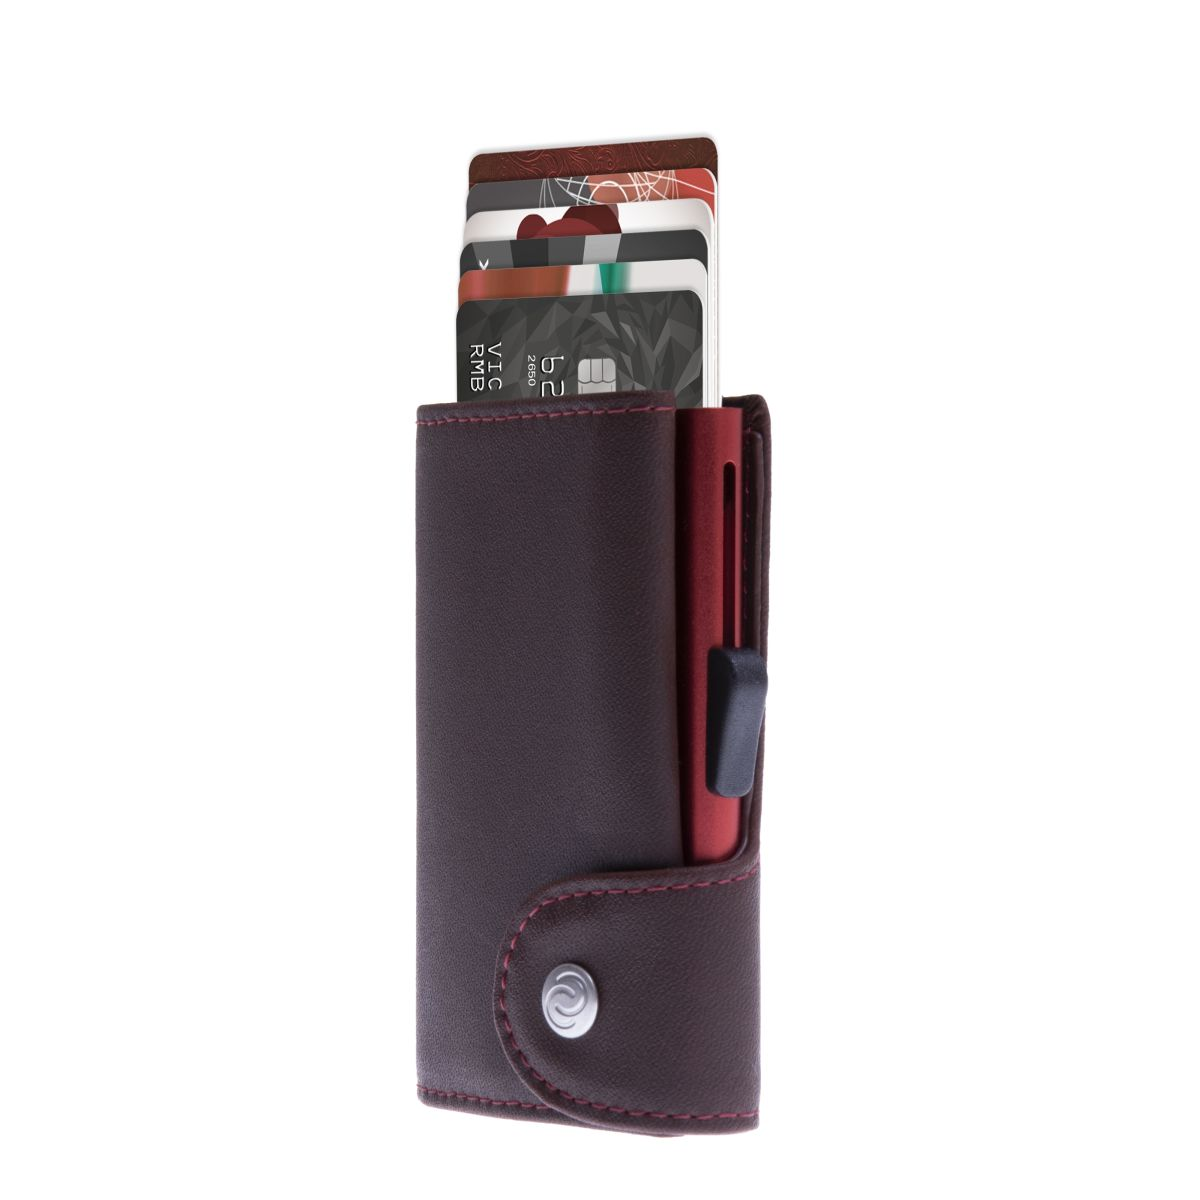 C-Secure Aluminum Card Holder with Genuine Leather and Coin Pouch - Auburn Brown